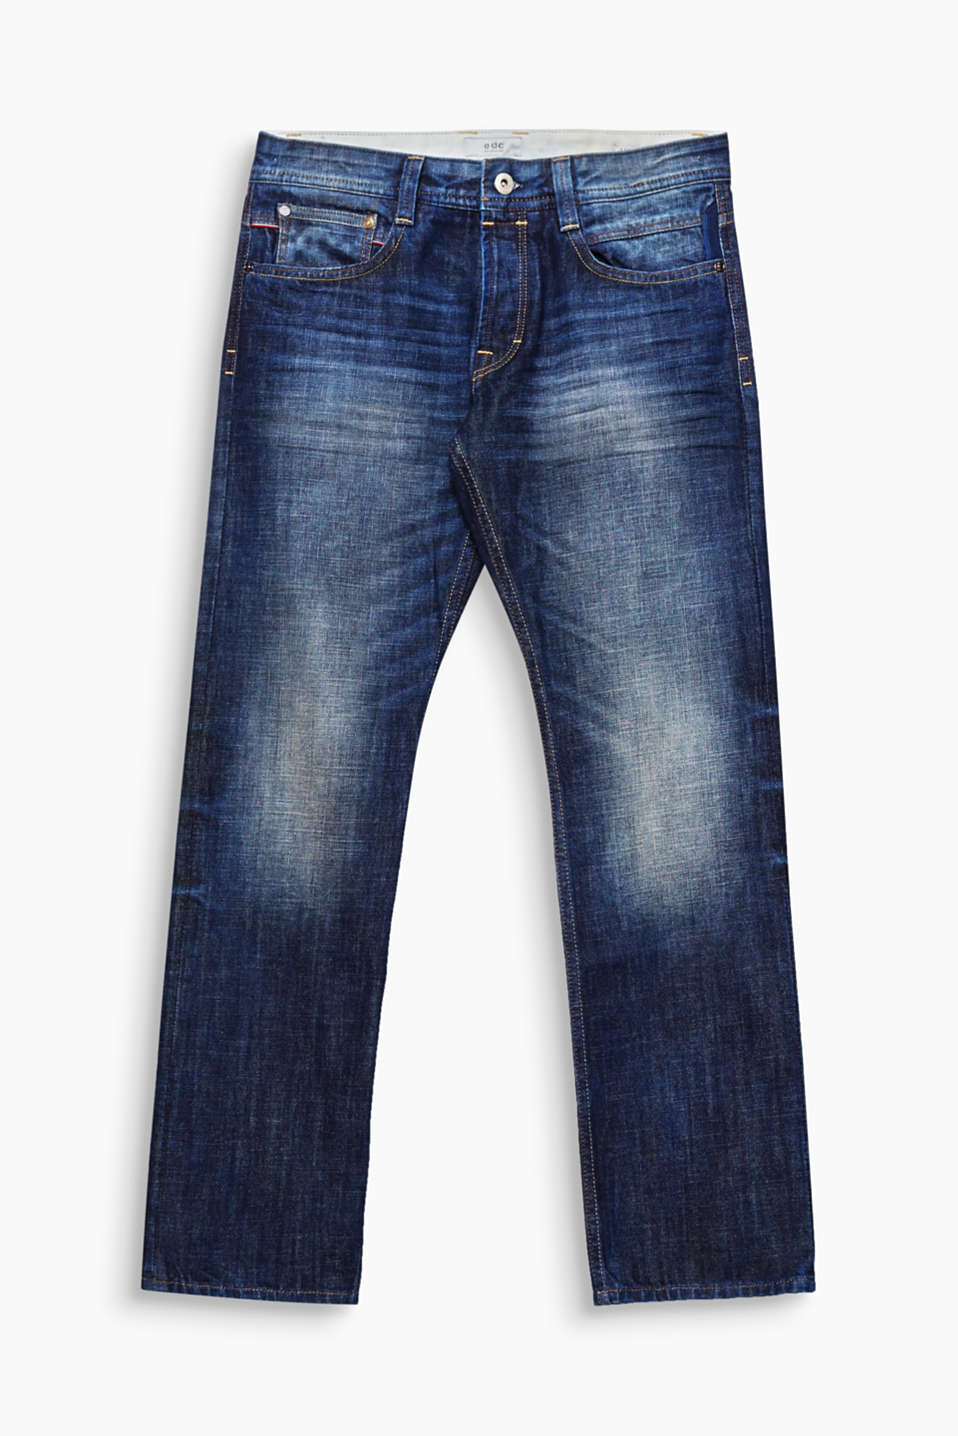 We love denim! This model comes in a vintage wash and is made of eco-friendly, high-quality organic cotton.